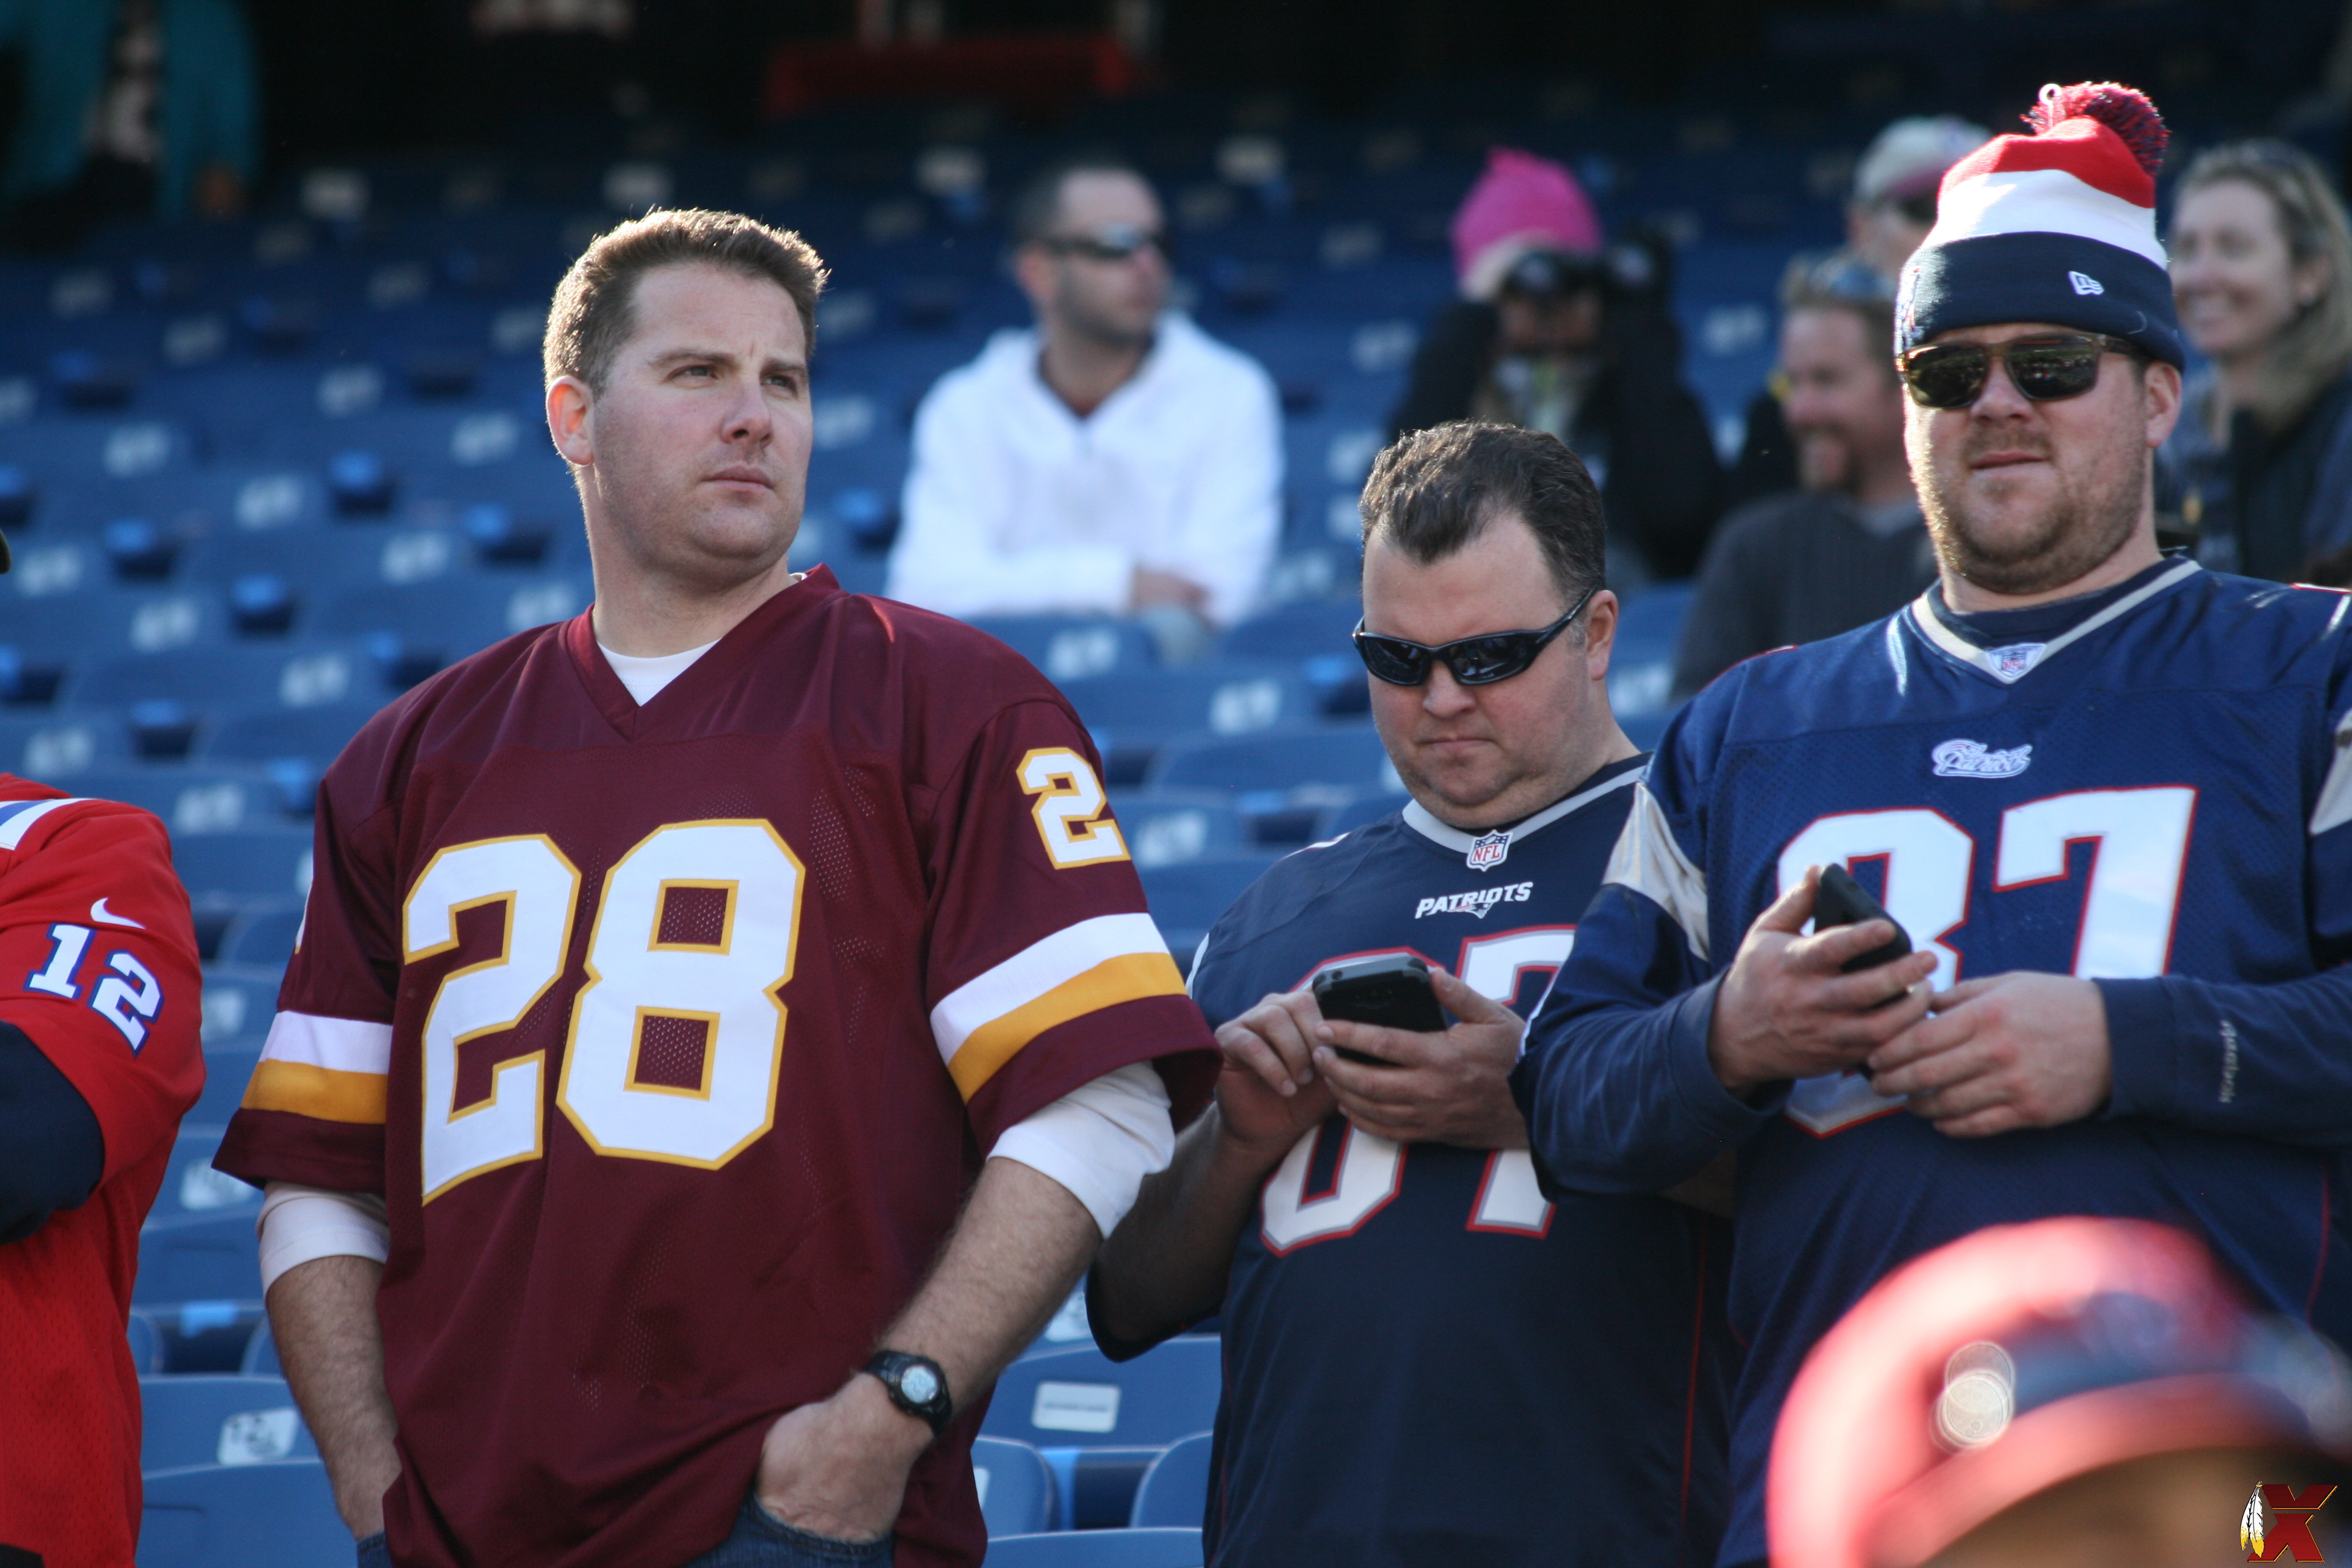 week-9-2015-redskins-at-patriots_22267087824_o.jpg